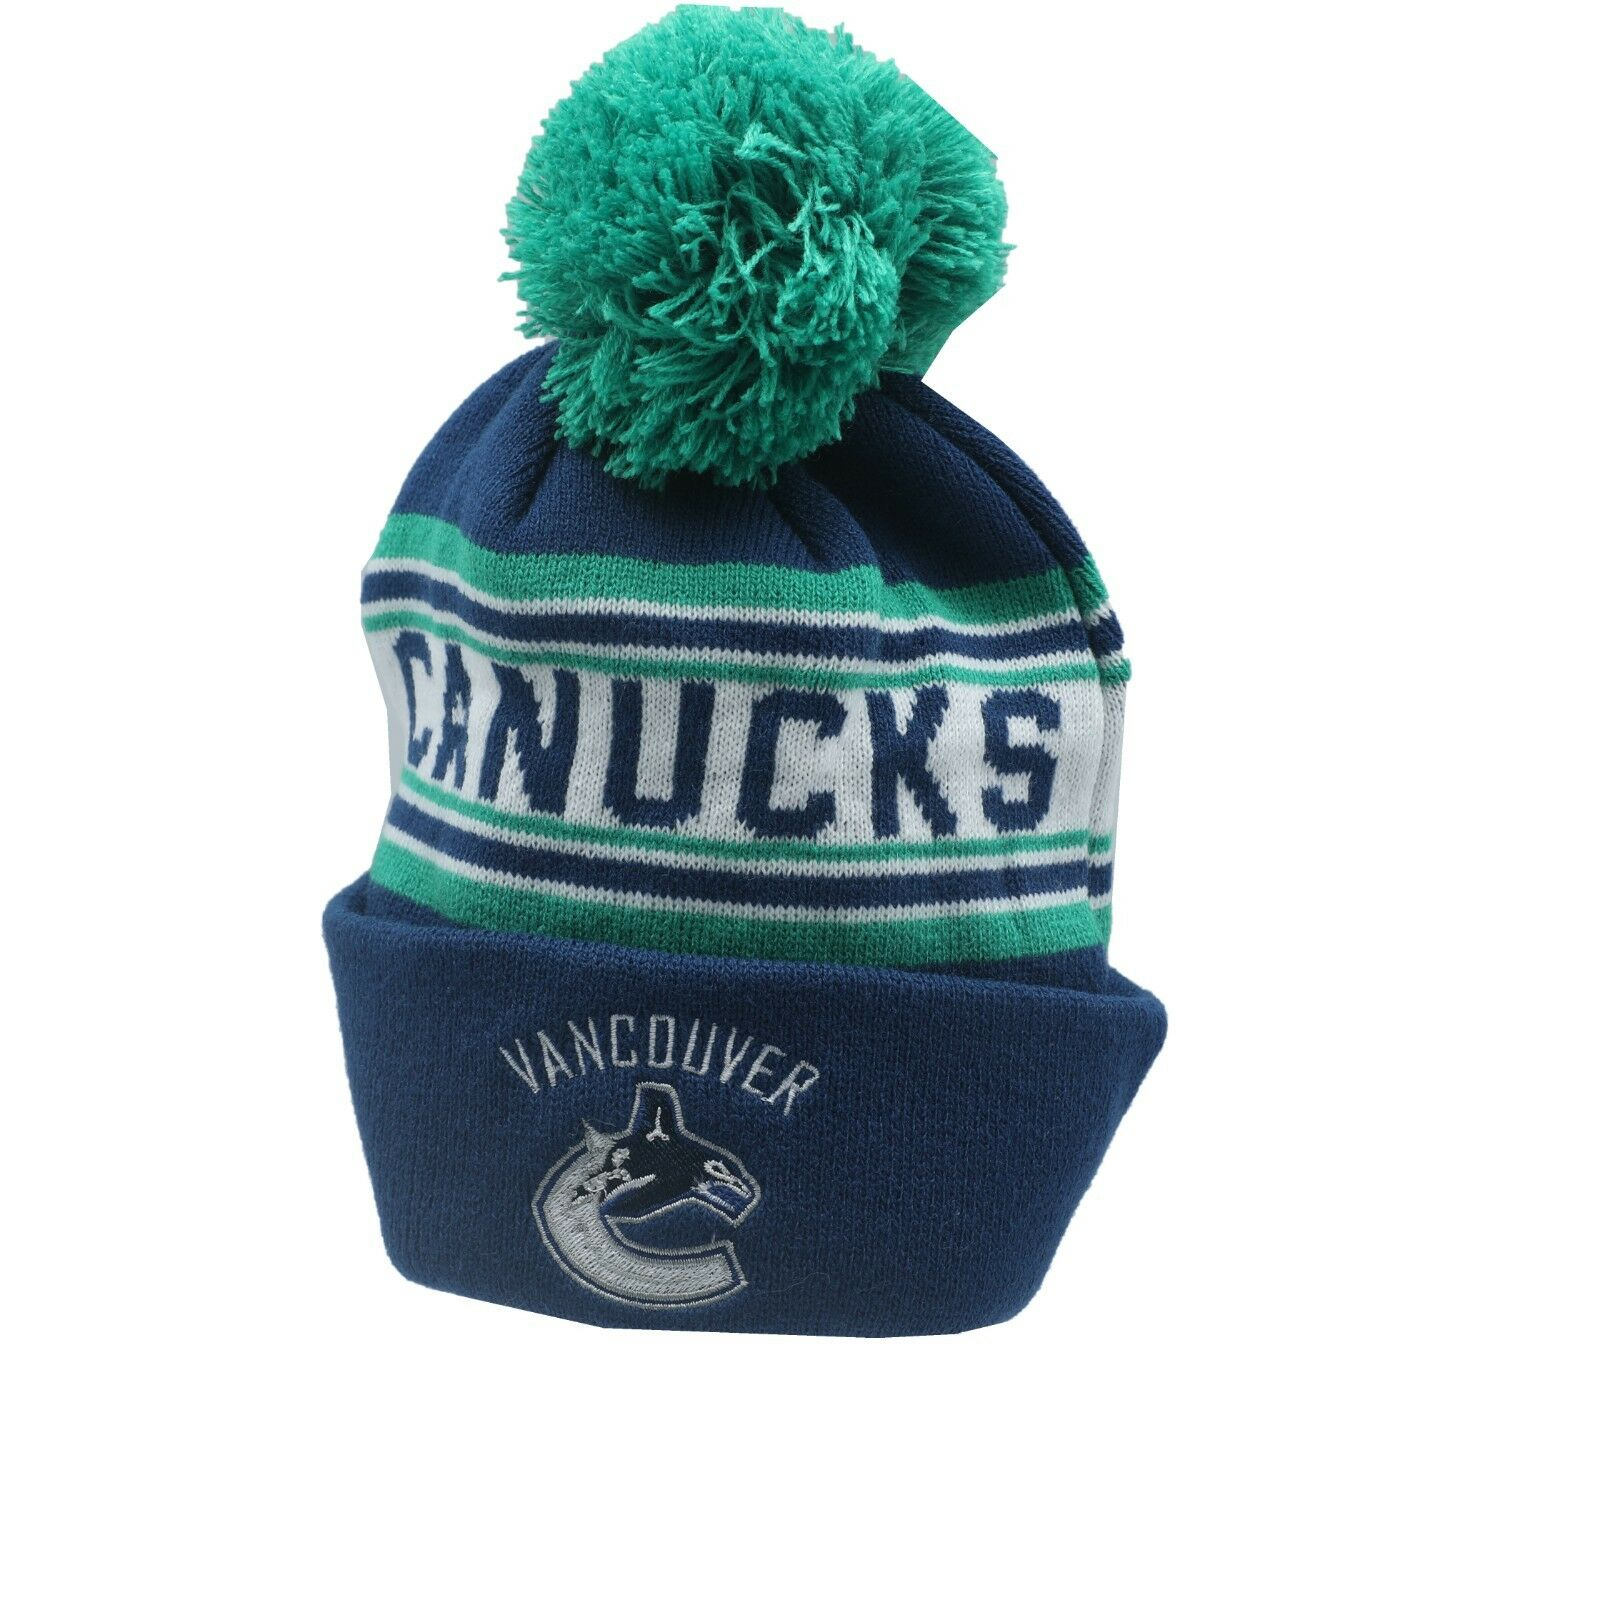 b3858139c98 Vancouver Canucks NHL Reebok Youth Boys (8-20) Cuffed Pom Knit Winter Beanie